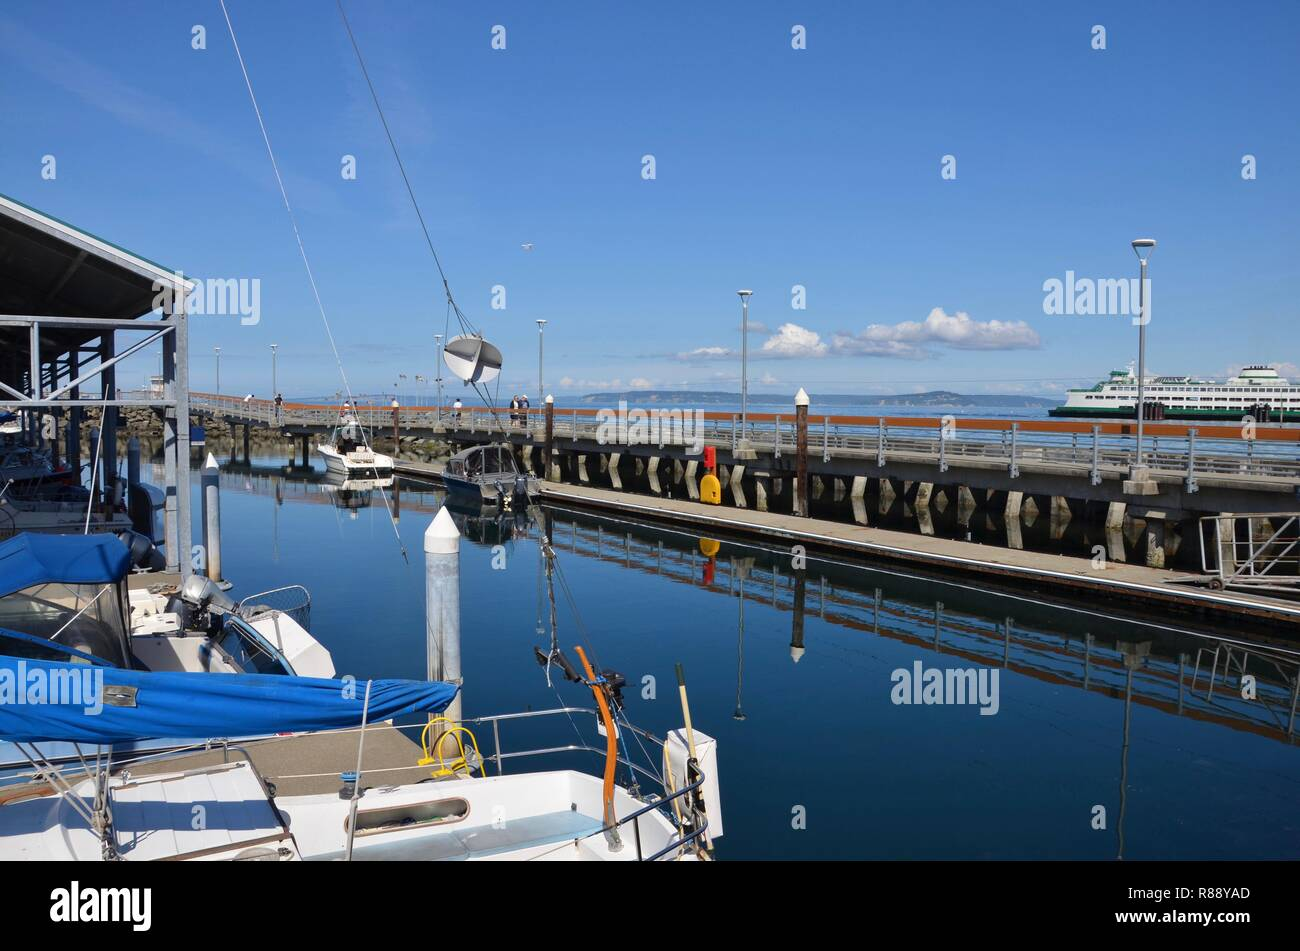 Waterfront of Edmonds in Washington state, view towards the pier and marina, ferry, state ferry system, Seattle Metropolitan area, September - Stock Image